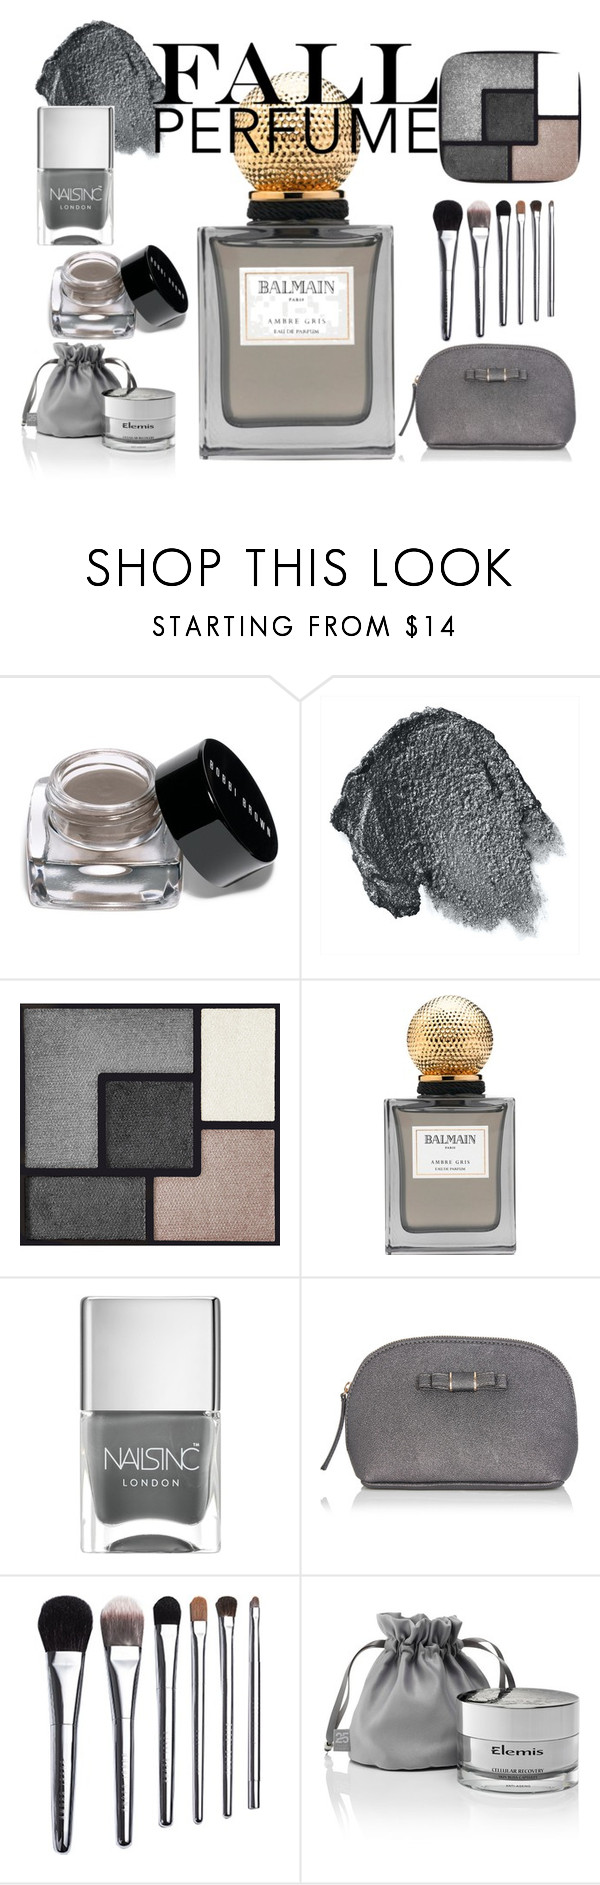 """""""Ambre Gris Fall Perfume"""" by ruthy-md ❤ liked on Polyvore featuring beauty, Bobbi Brown Cosmetics, Anna Sui, Yves Saint Laurent, Balmain, Nails Inc., Oasis, Elemis, Silver and gris"""